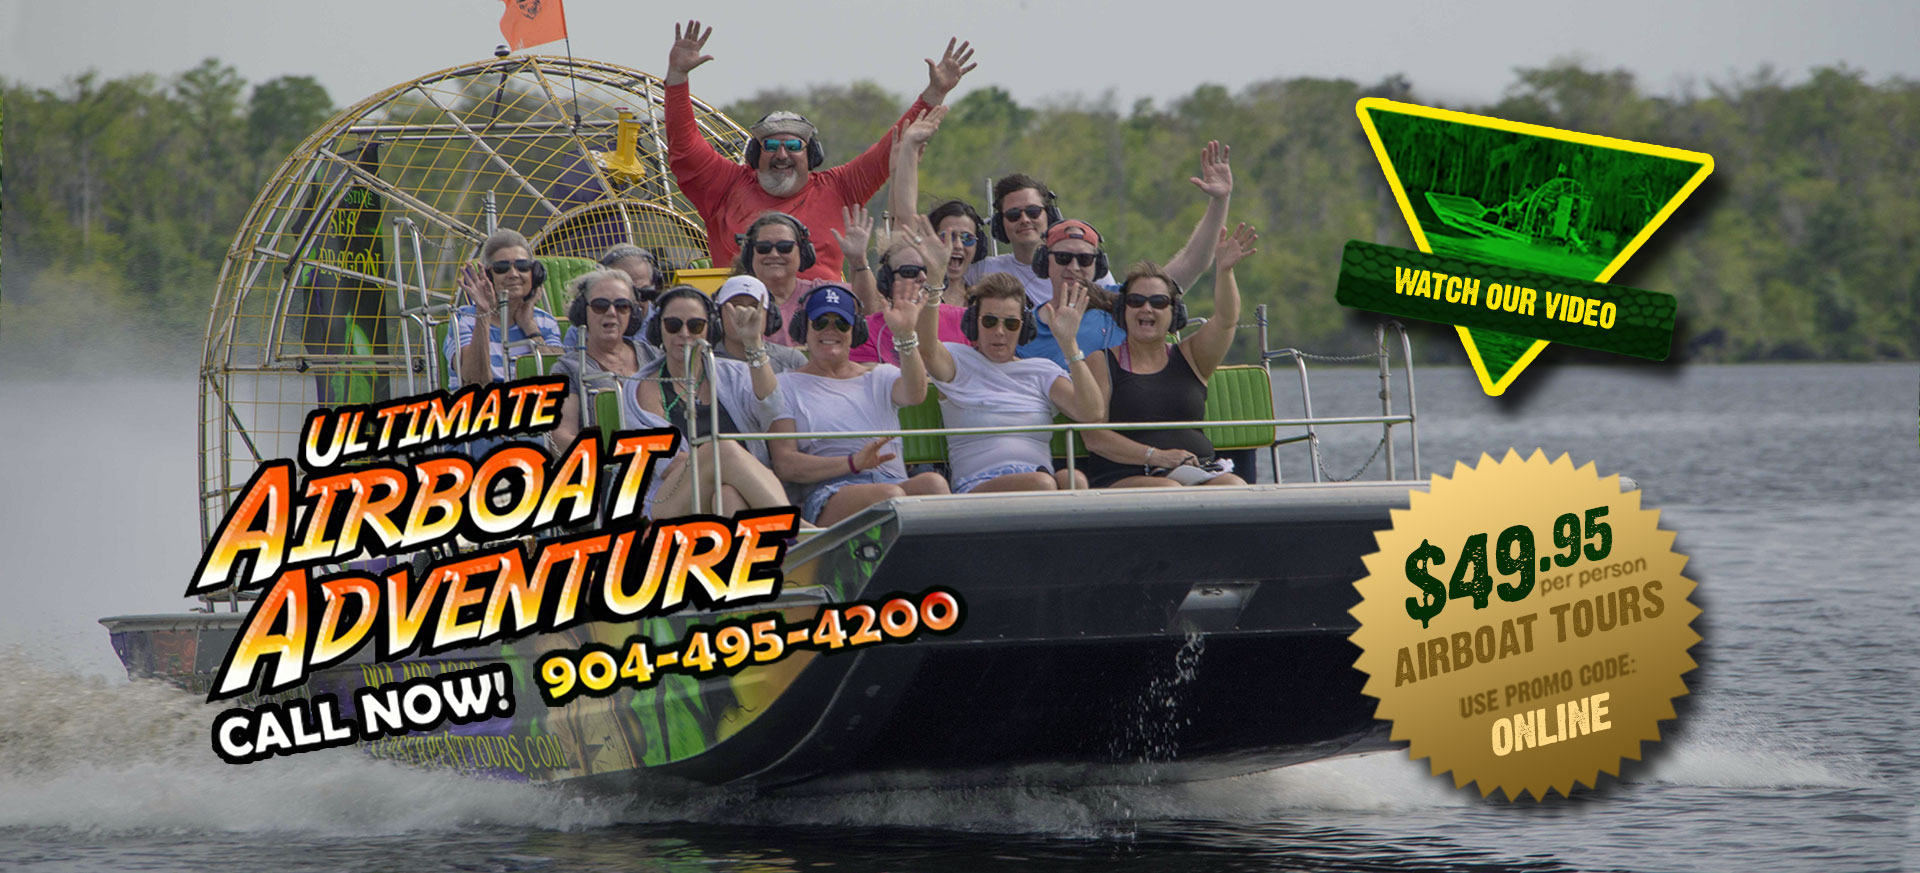 $49.95 Airboat Rides